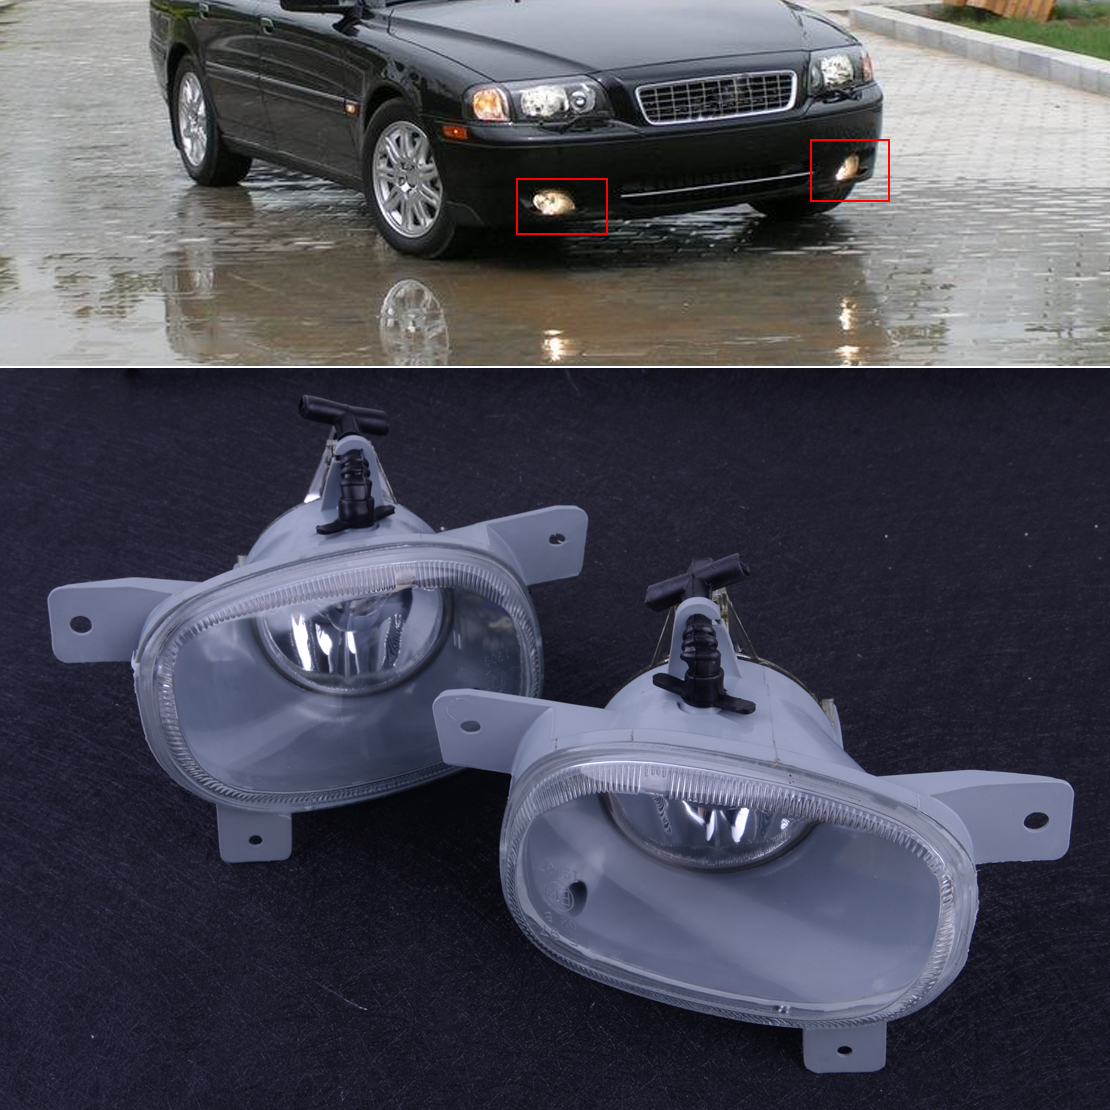 CITALL 1Pc Left Right Front Bumper Fog Light Lamp 8620224 8620225 Fit For Volvo S80 1999 2000 2001 2002 2003 2004 2005 2006